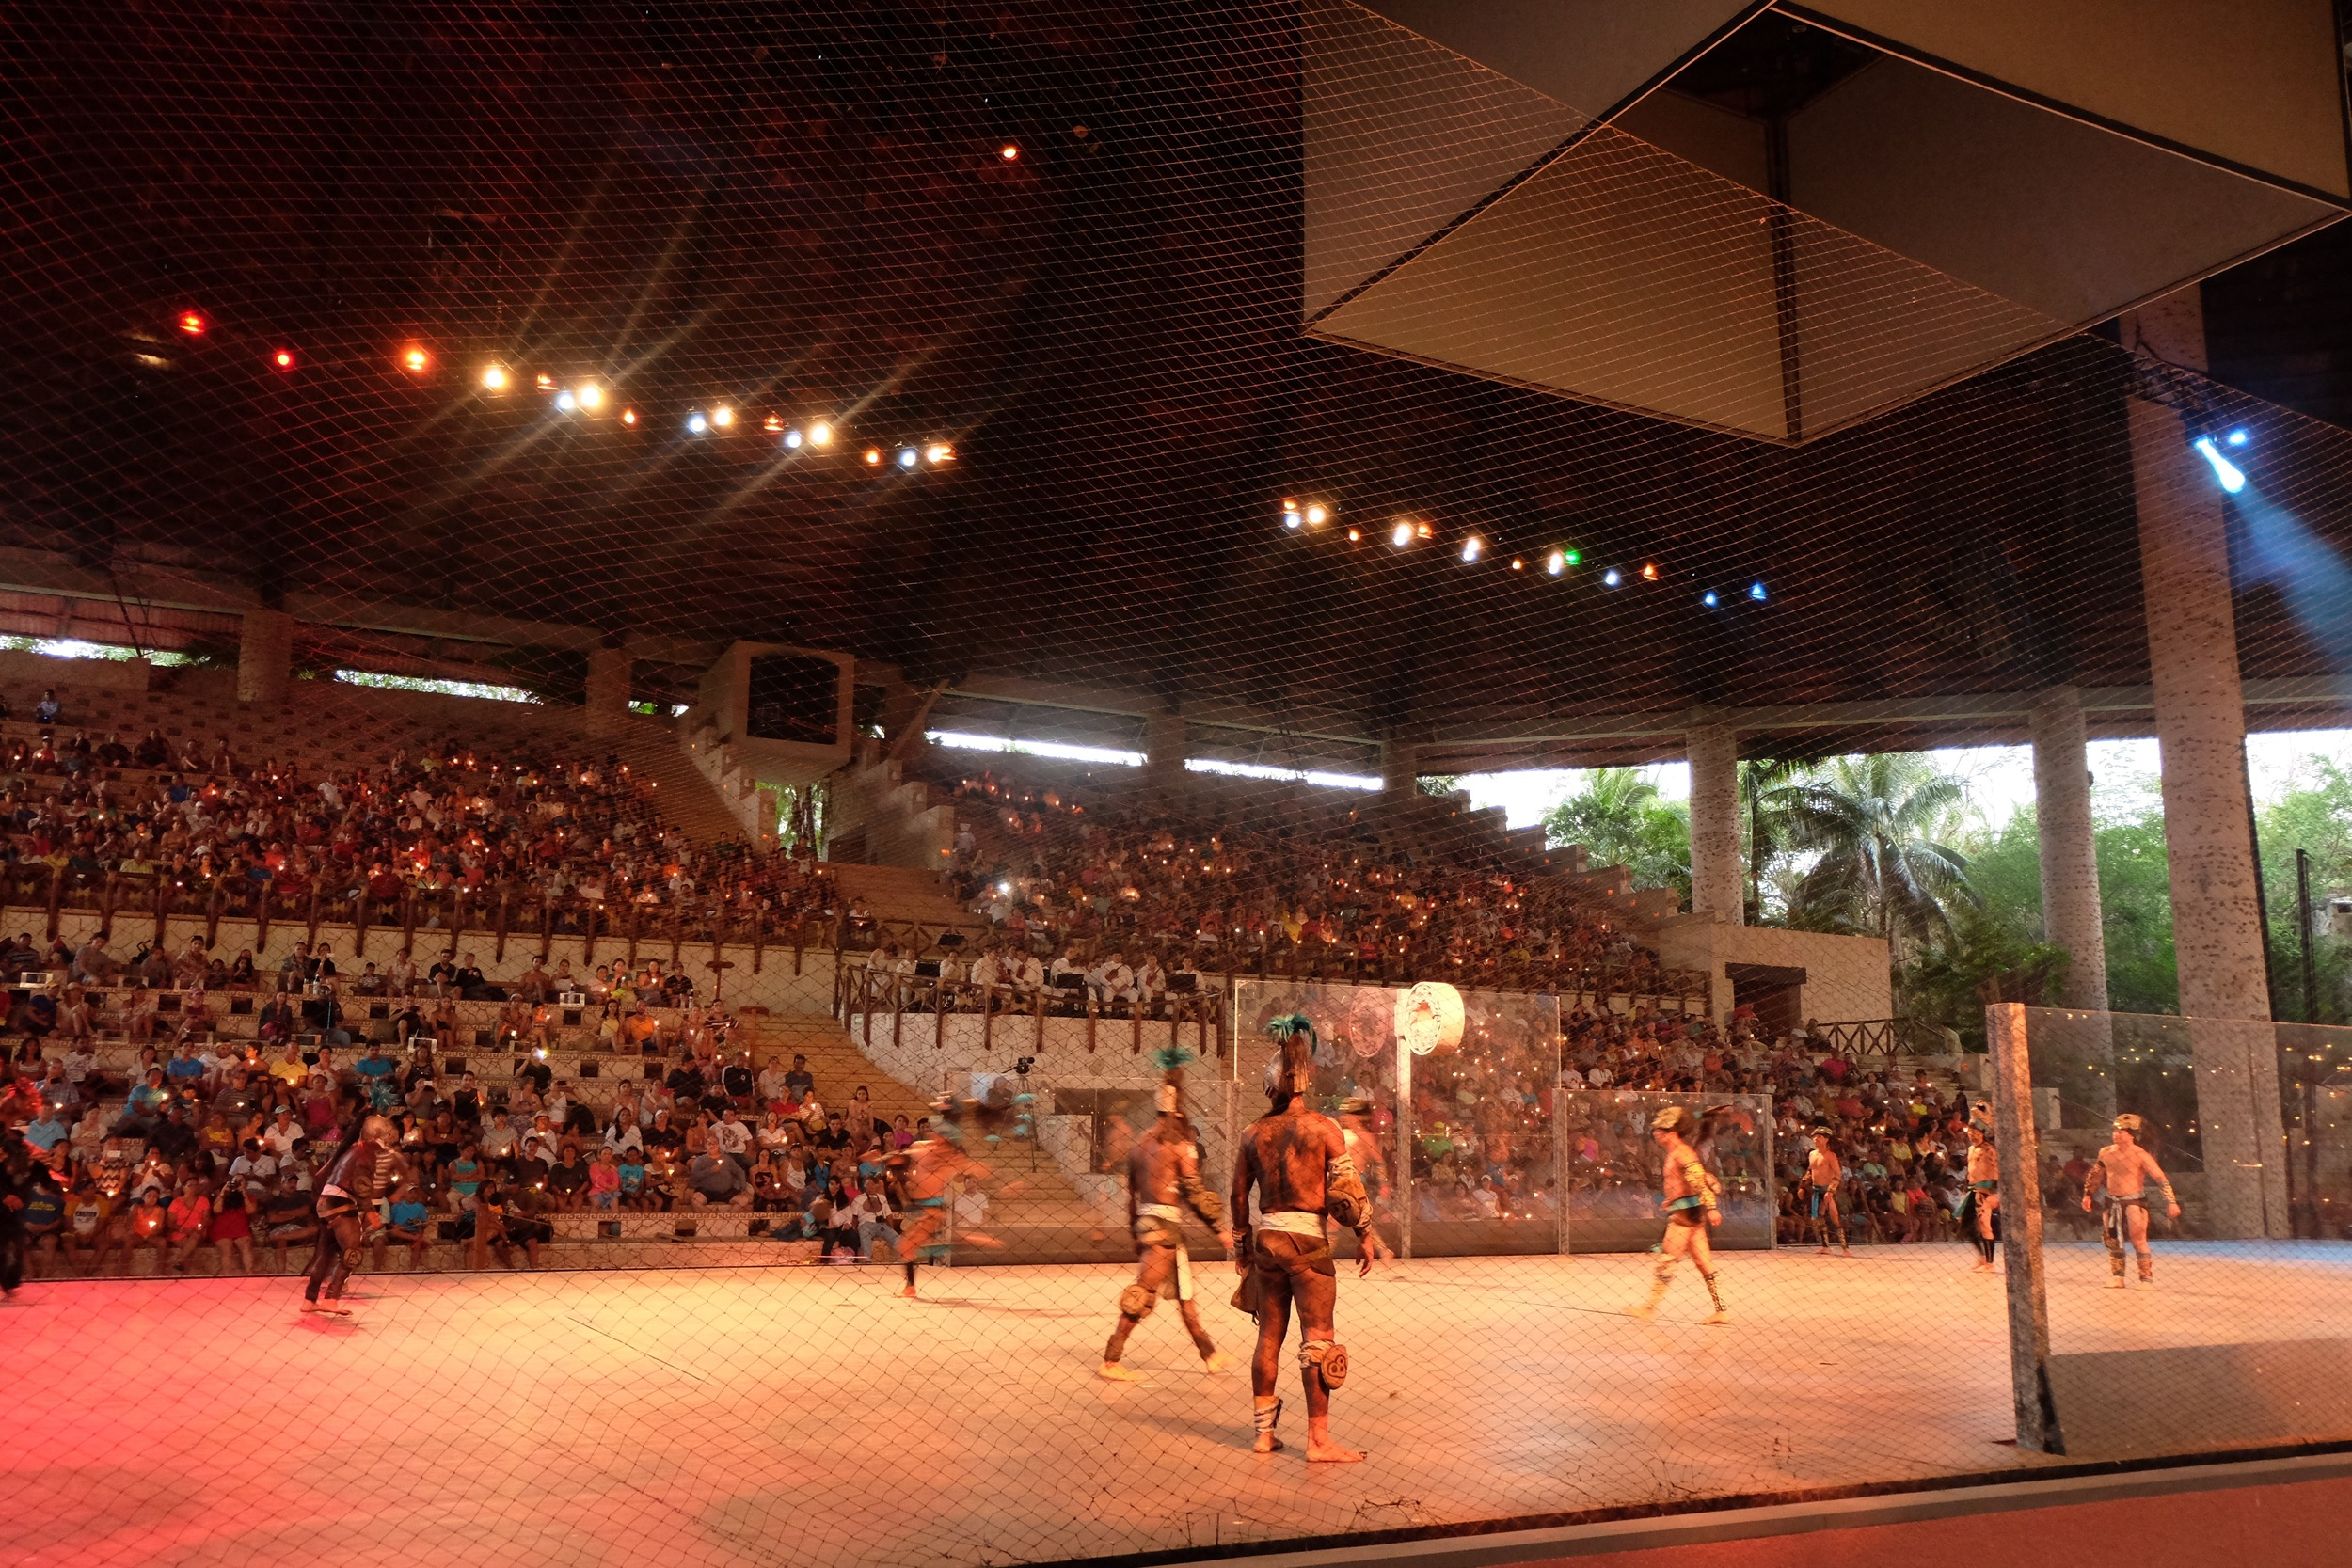 Live show of the Mayan ball game